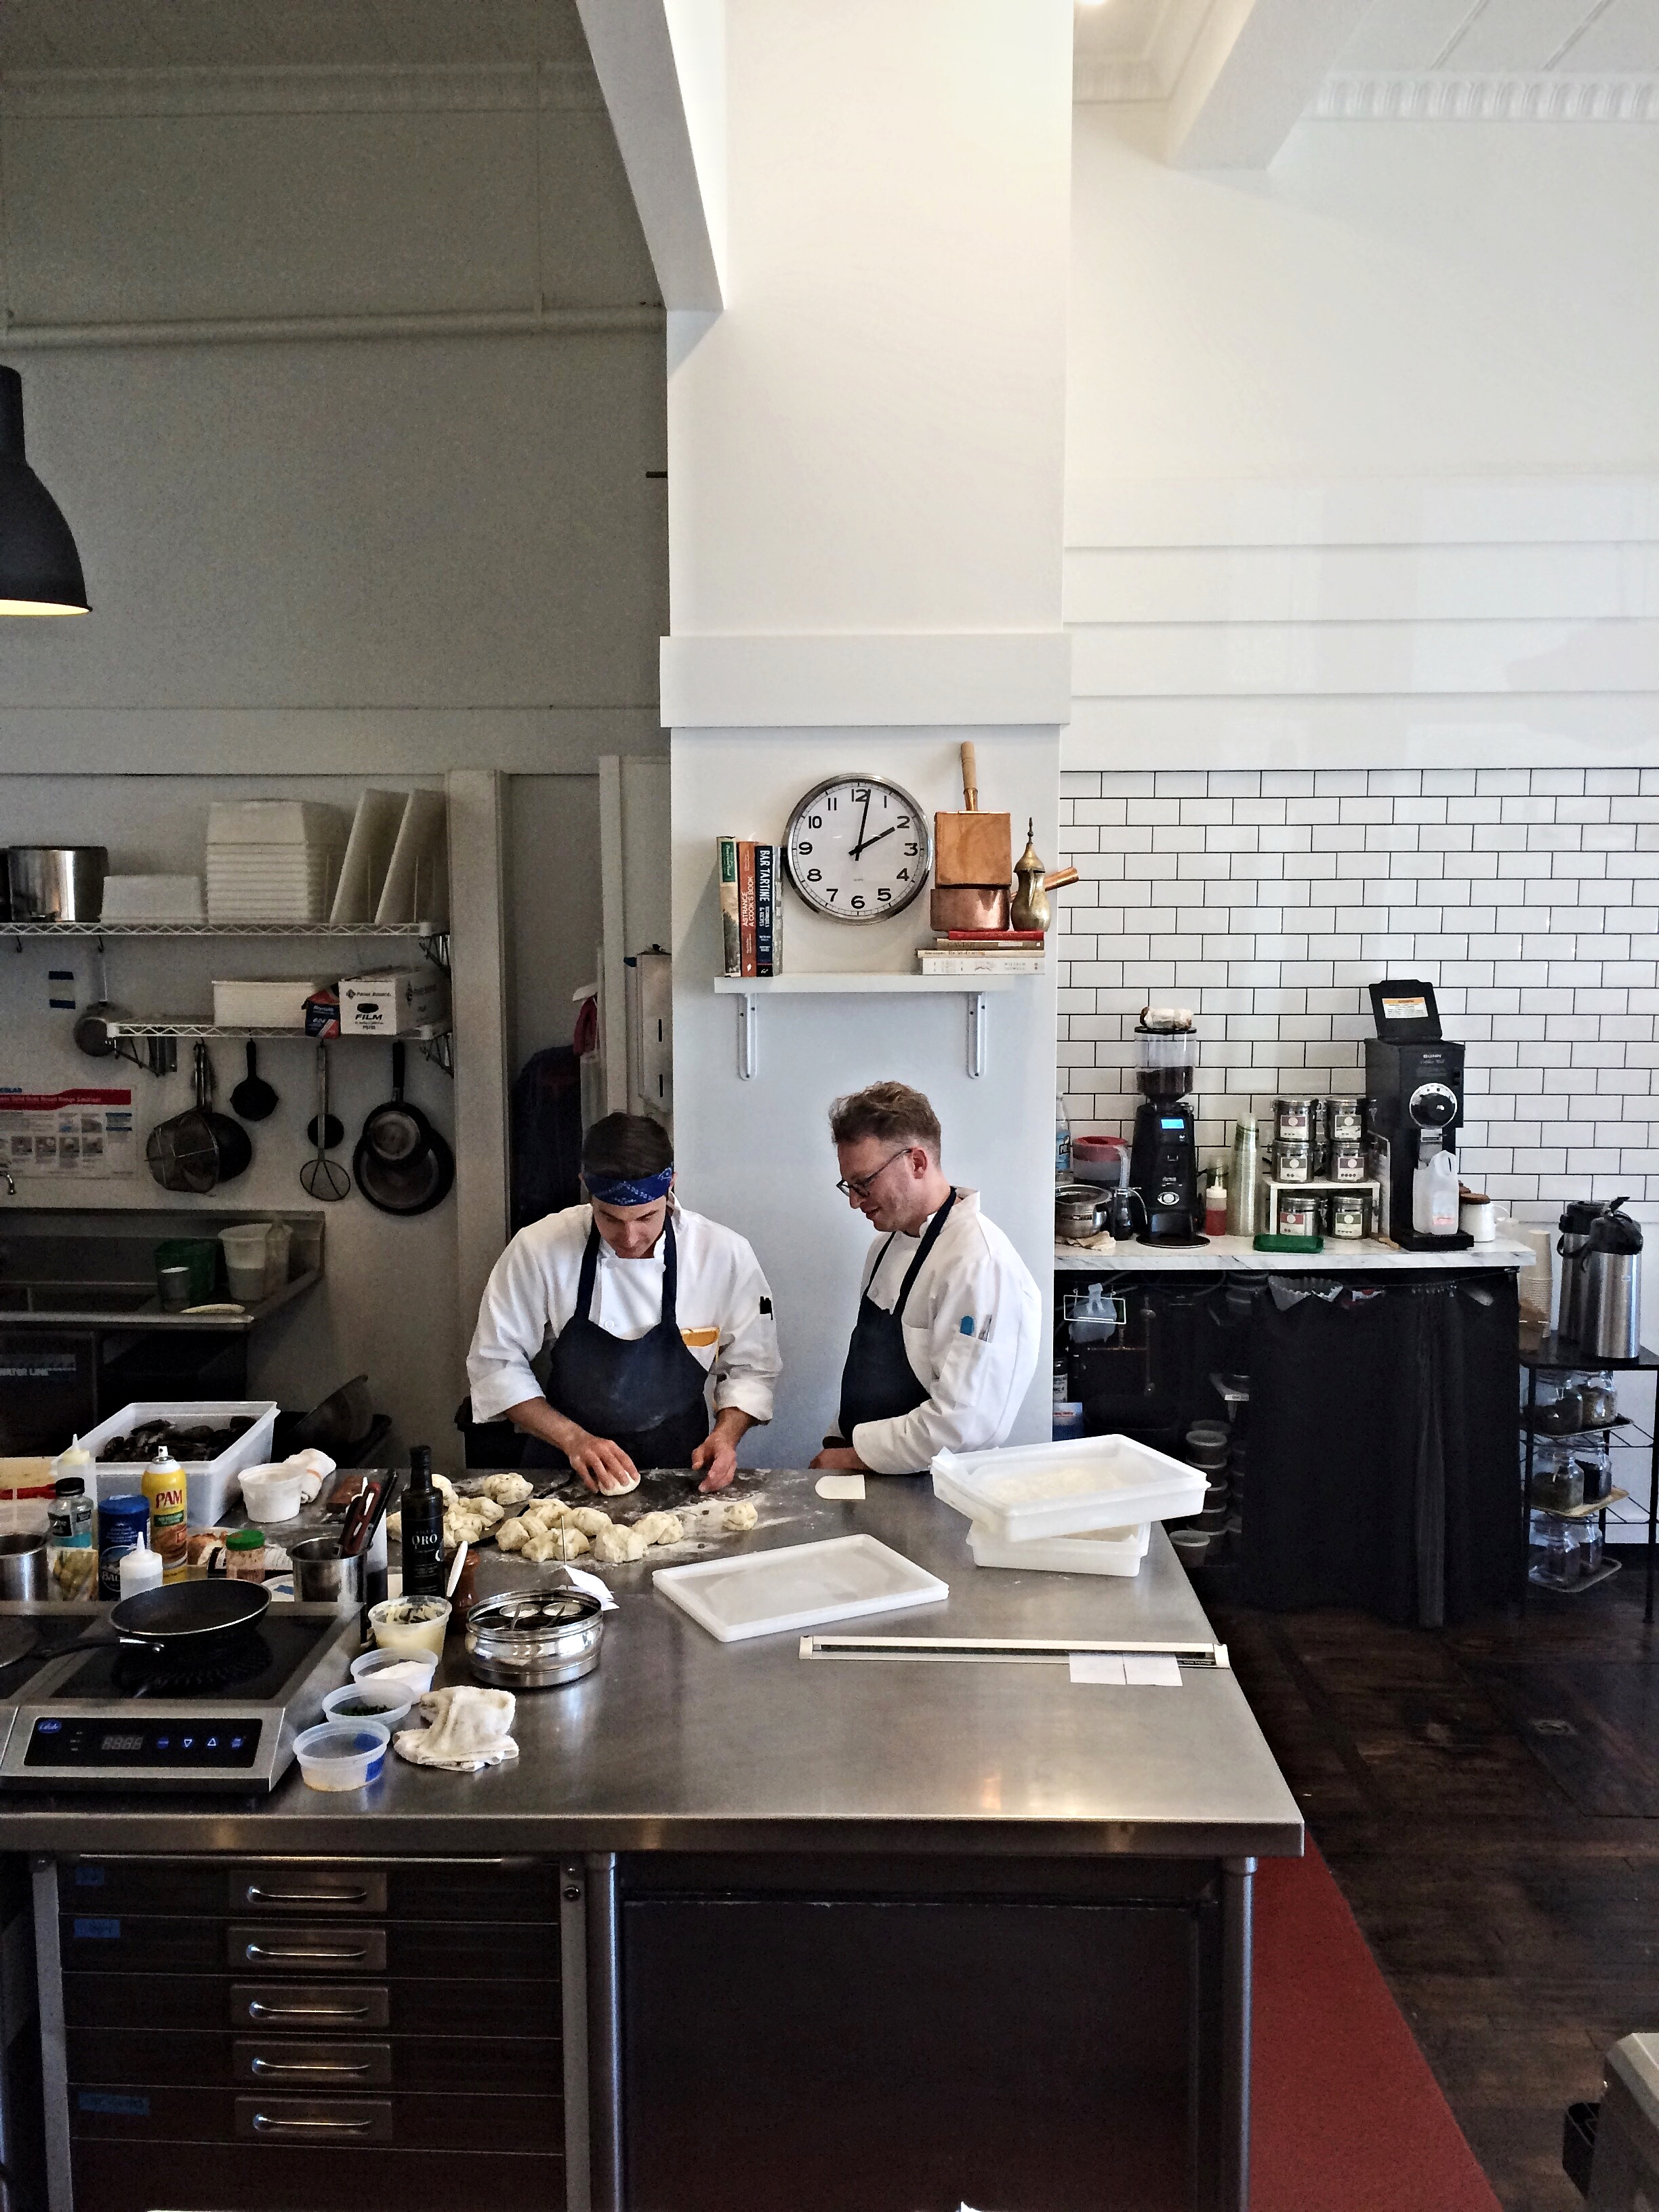 The open kitchen at Juliet